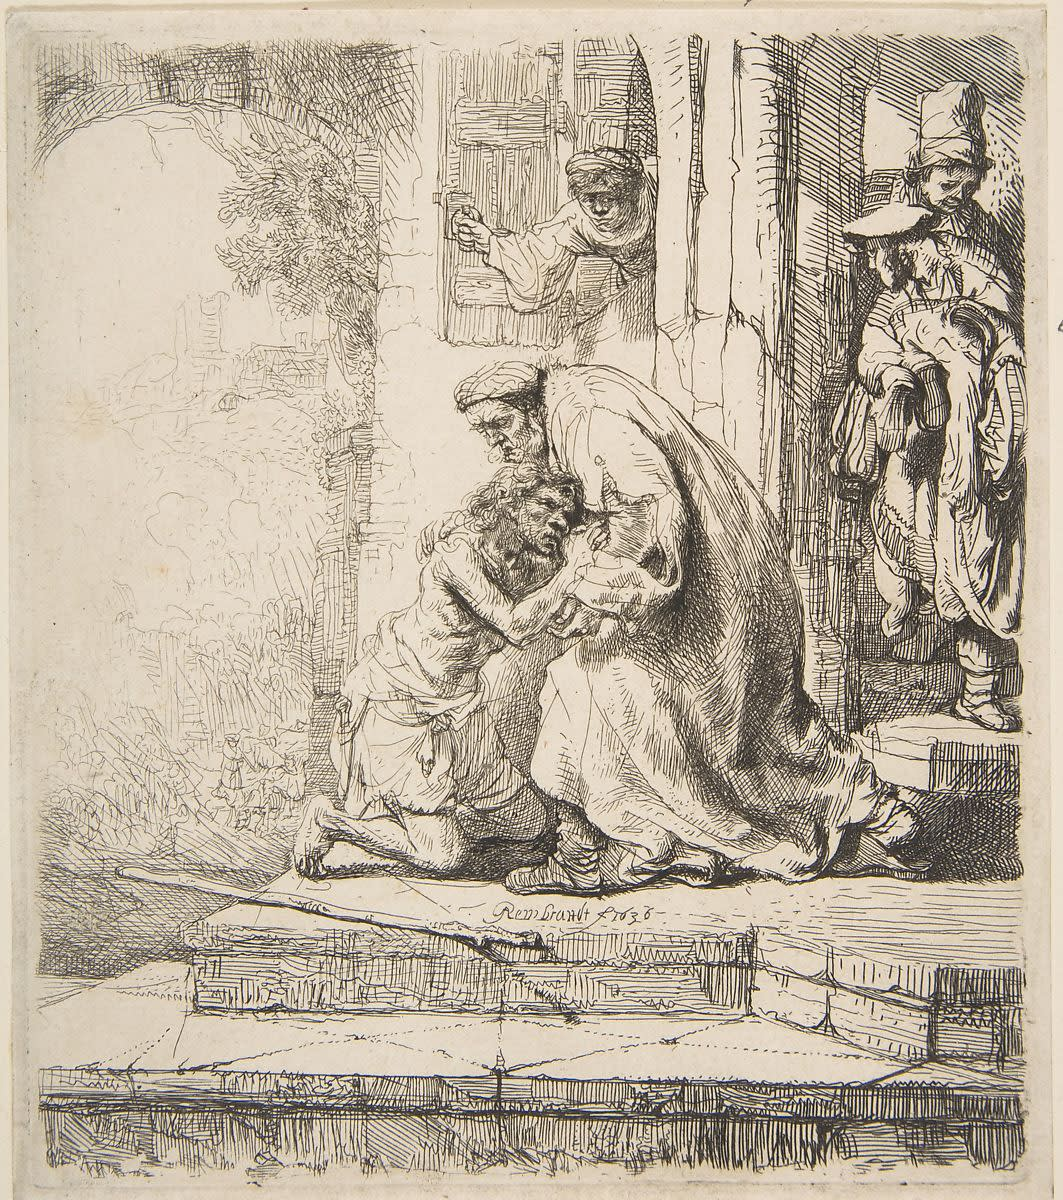 Rembrandt van Rijn (1606-1669) The Return of the Prodigal Son 1636 Etching on paper 22 x 24 cm Ben Uri Collection © Rembrandt To see and discover more about this artist click here